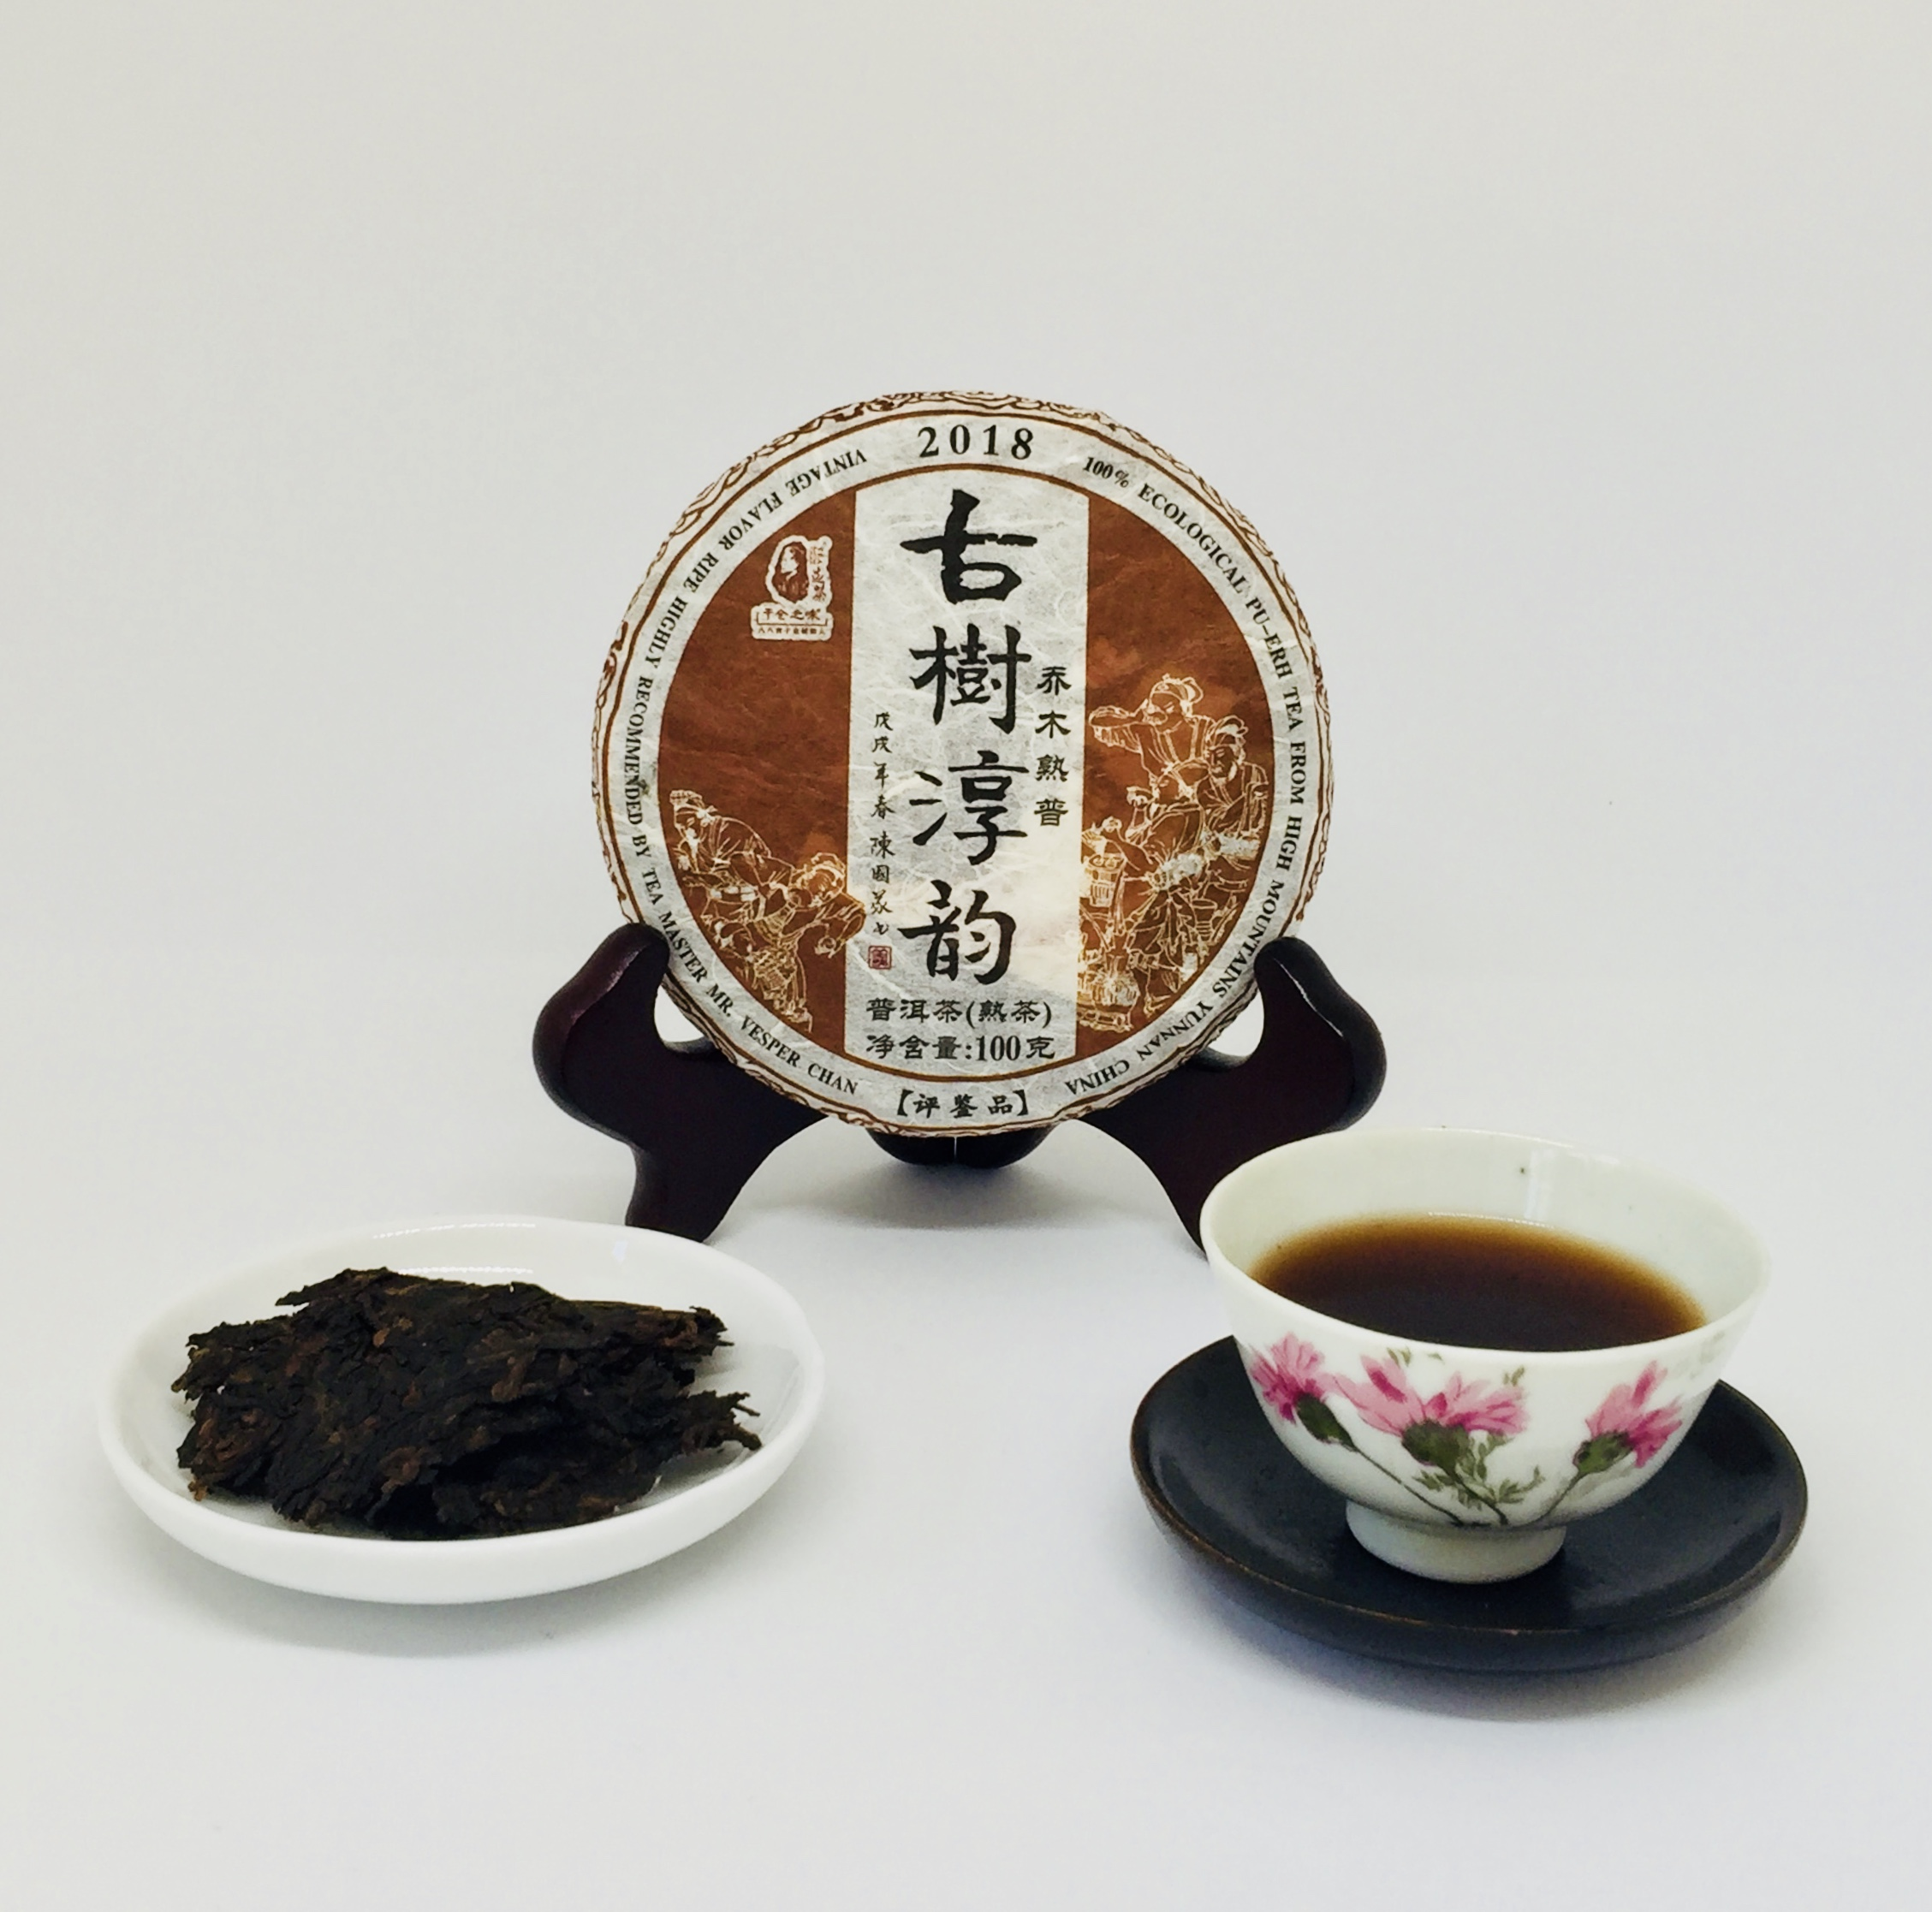 Enchantment of Ancient Trees Ripe Pu-erh Tea